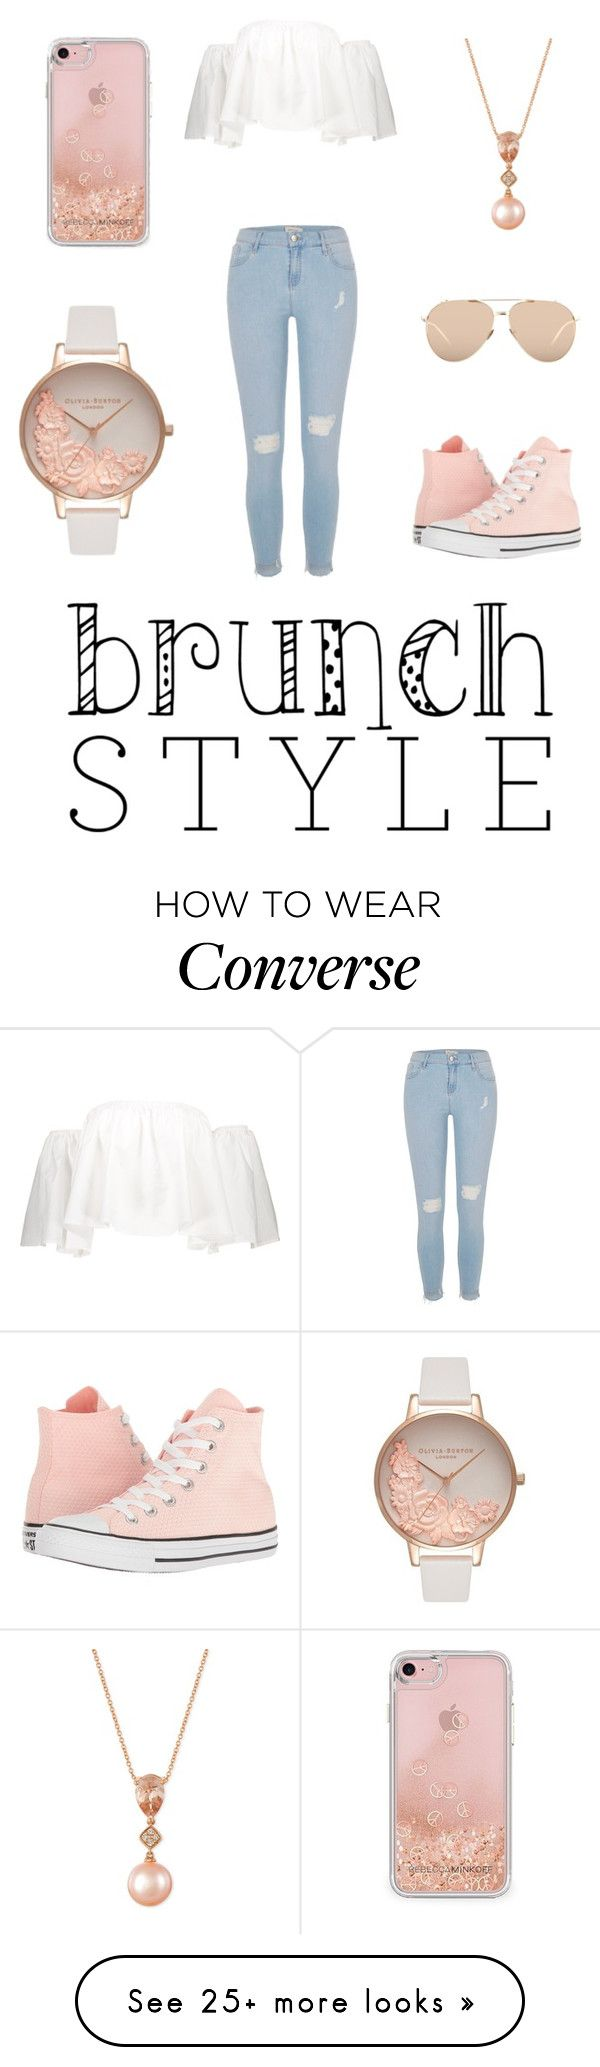 """#BrunchGoals"" by lizabeth-rose on Polyvore featuring Rebecca Minkoff, River Island, LE VIAN, Linda Farrow, Converse and Olivia Burton I'd say a lonher white shirt but the rest is cute!"